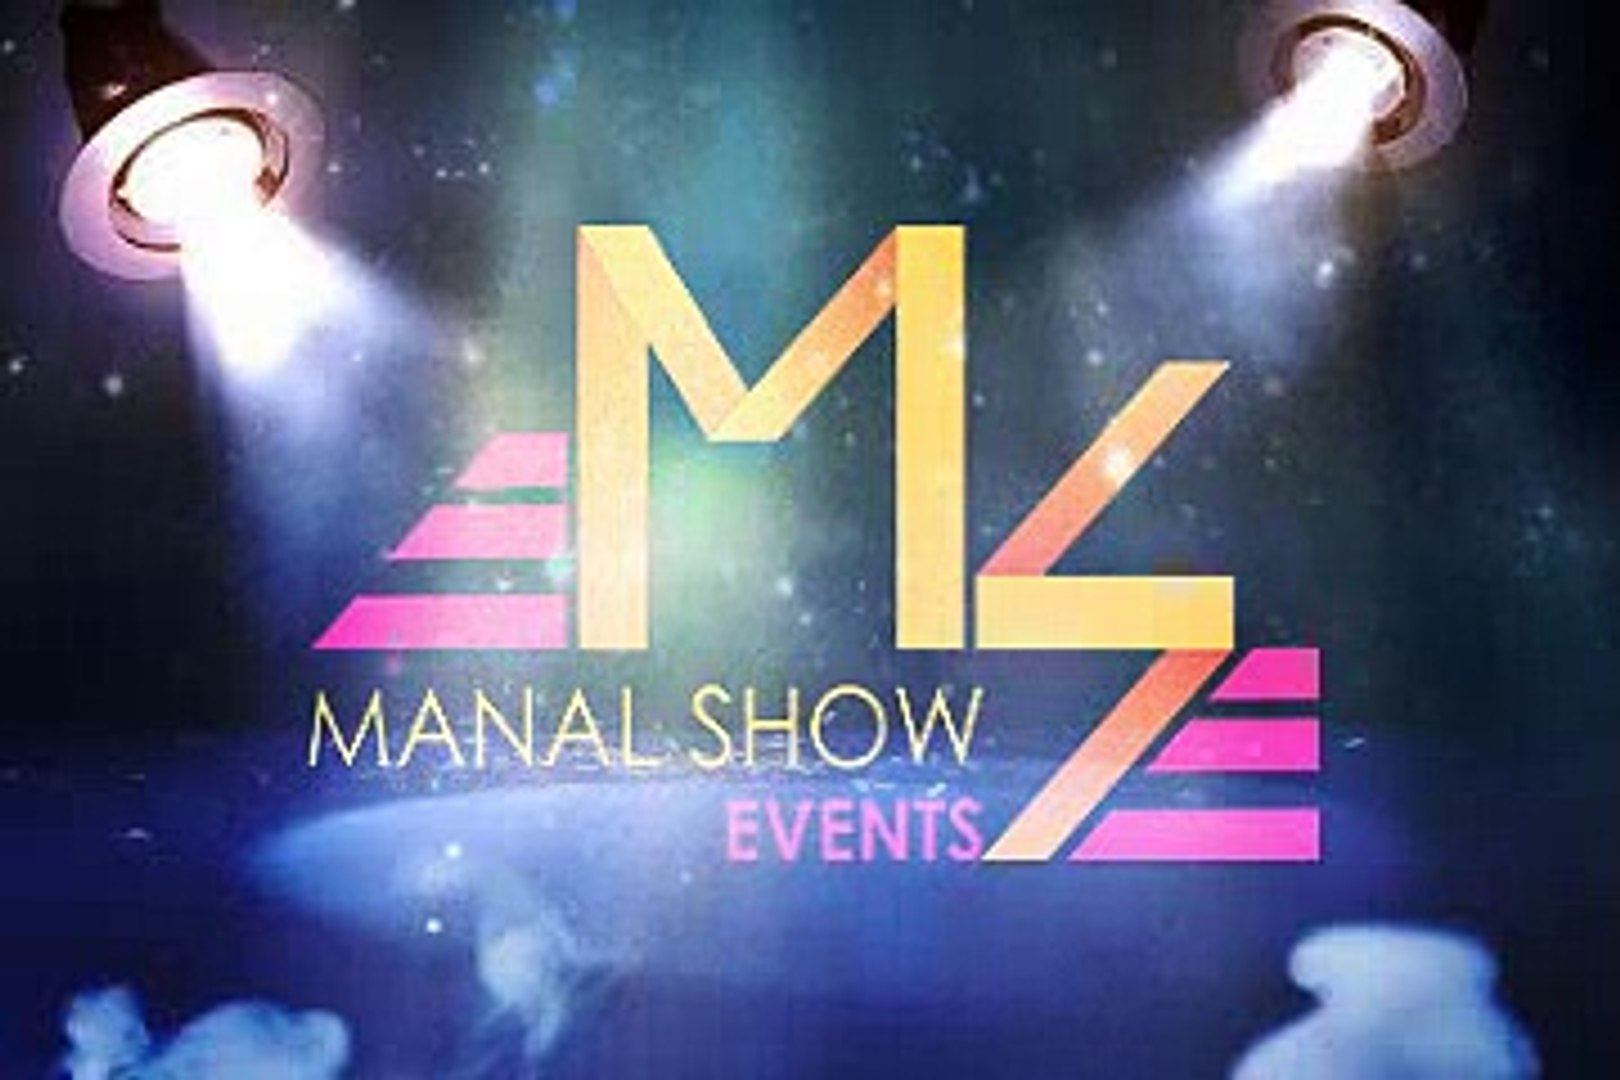 MANAL SHOW EVENTS